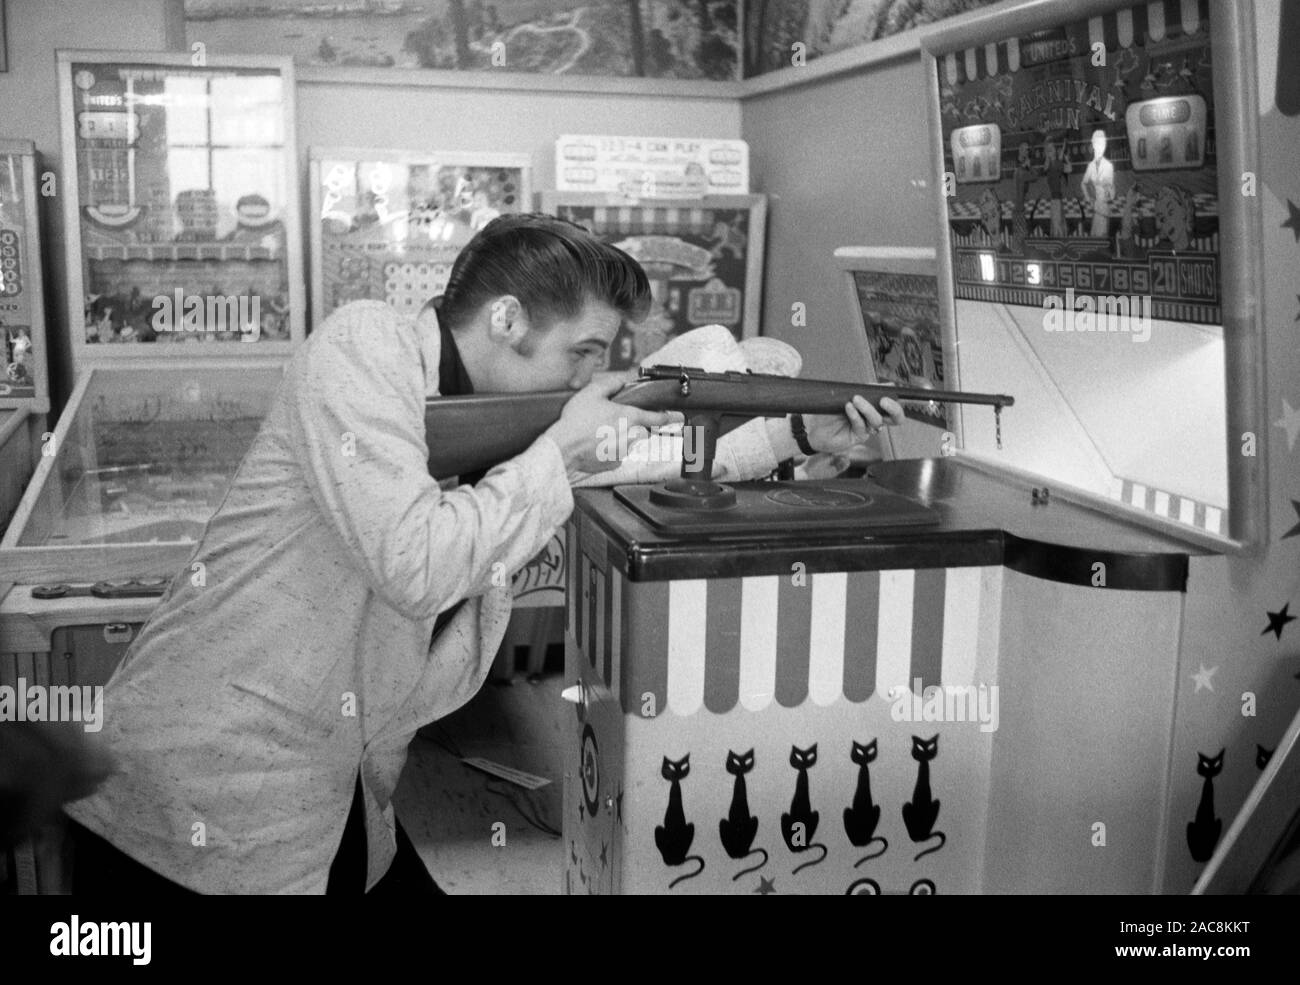 Elvis Presley taking a break from touring in 1956. The location is very likely Detroit, Michigan, where Elvis was performing at the Fox Theater on May 25, 1956 Stock Photo